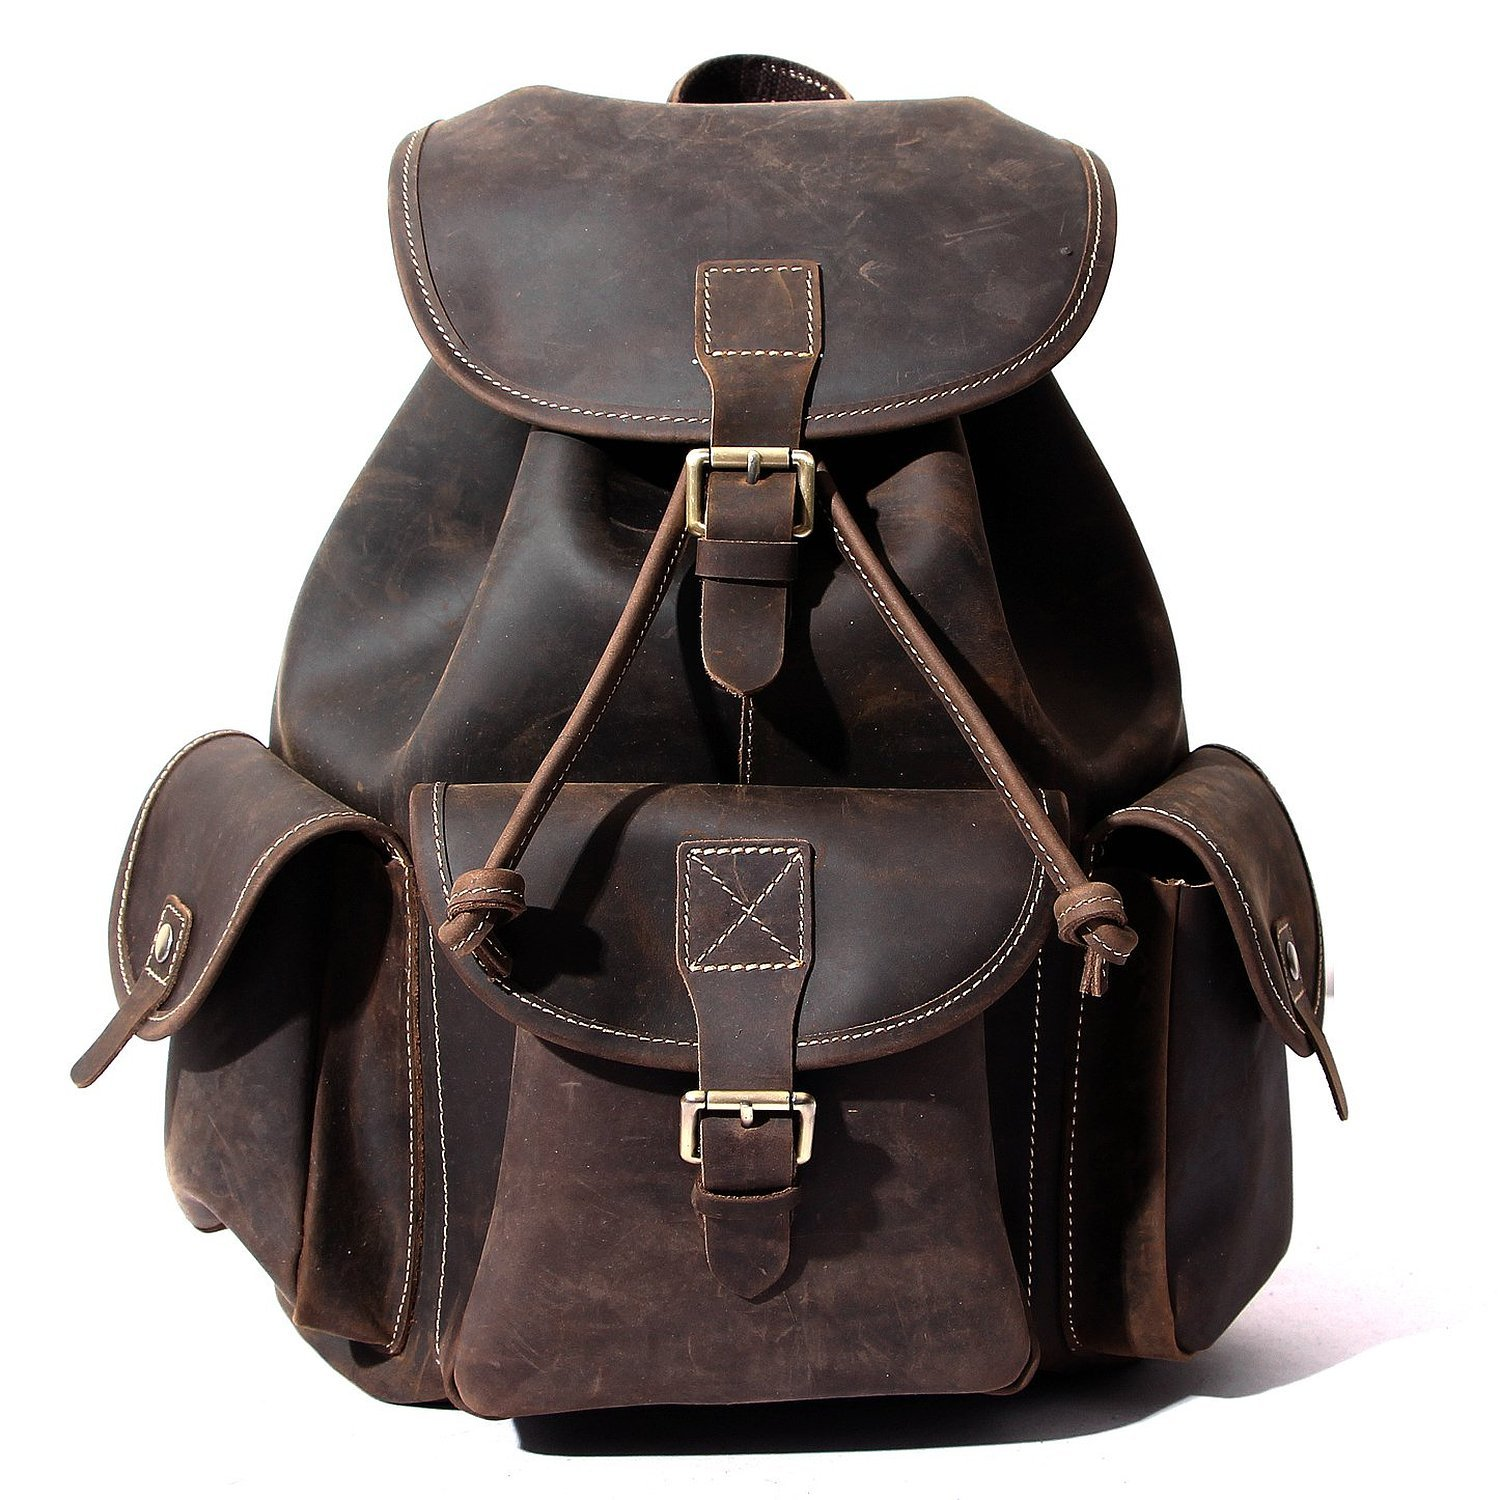 Leather Backpack, Berchirly Vintage Real Leather Travel Backpacks Rucksack School Laptop Camping Hiking Bag for College